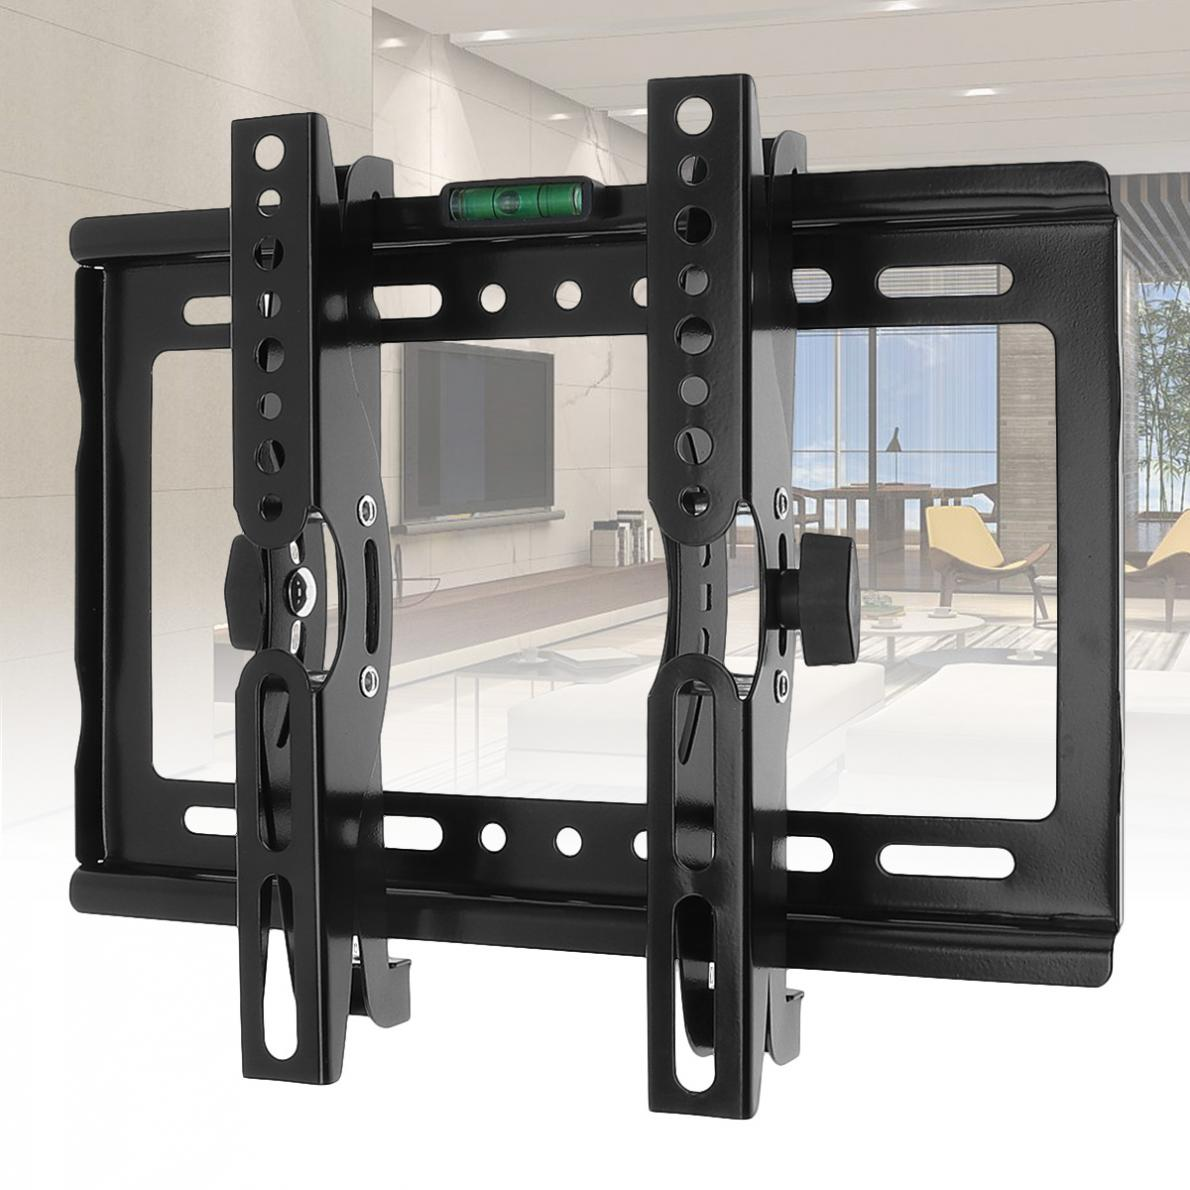 25KG Adjustable TV Wall Mounts Bracket Flat Panel TV Rack Frame Support 15 Degree Tilt Angle